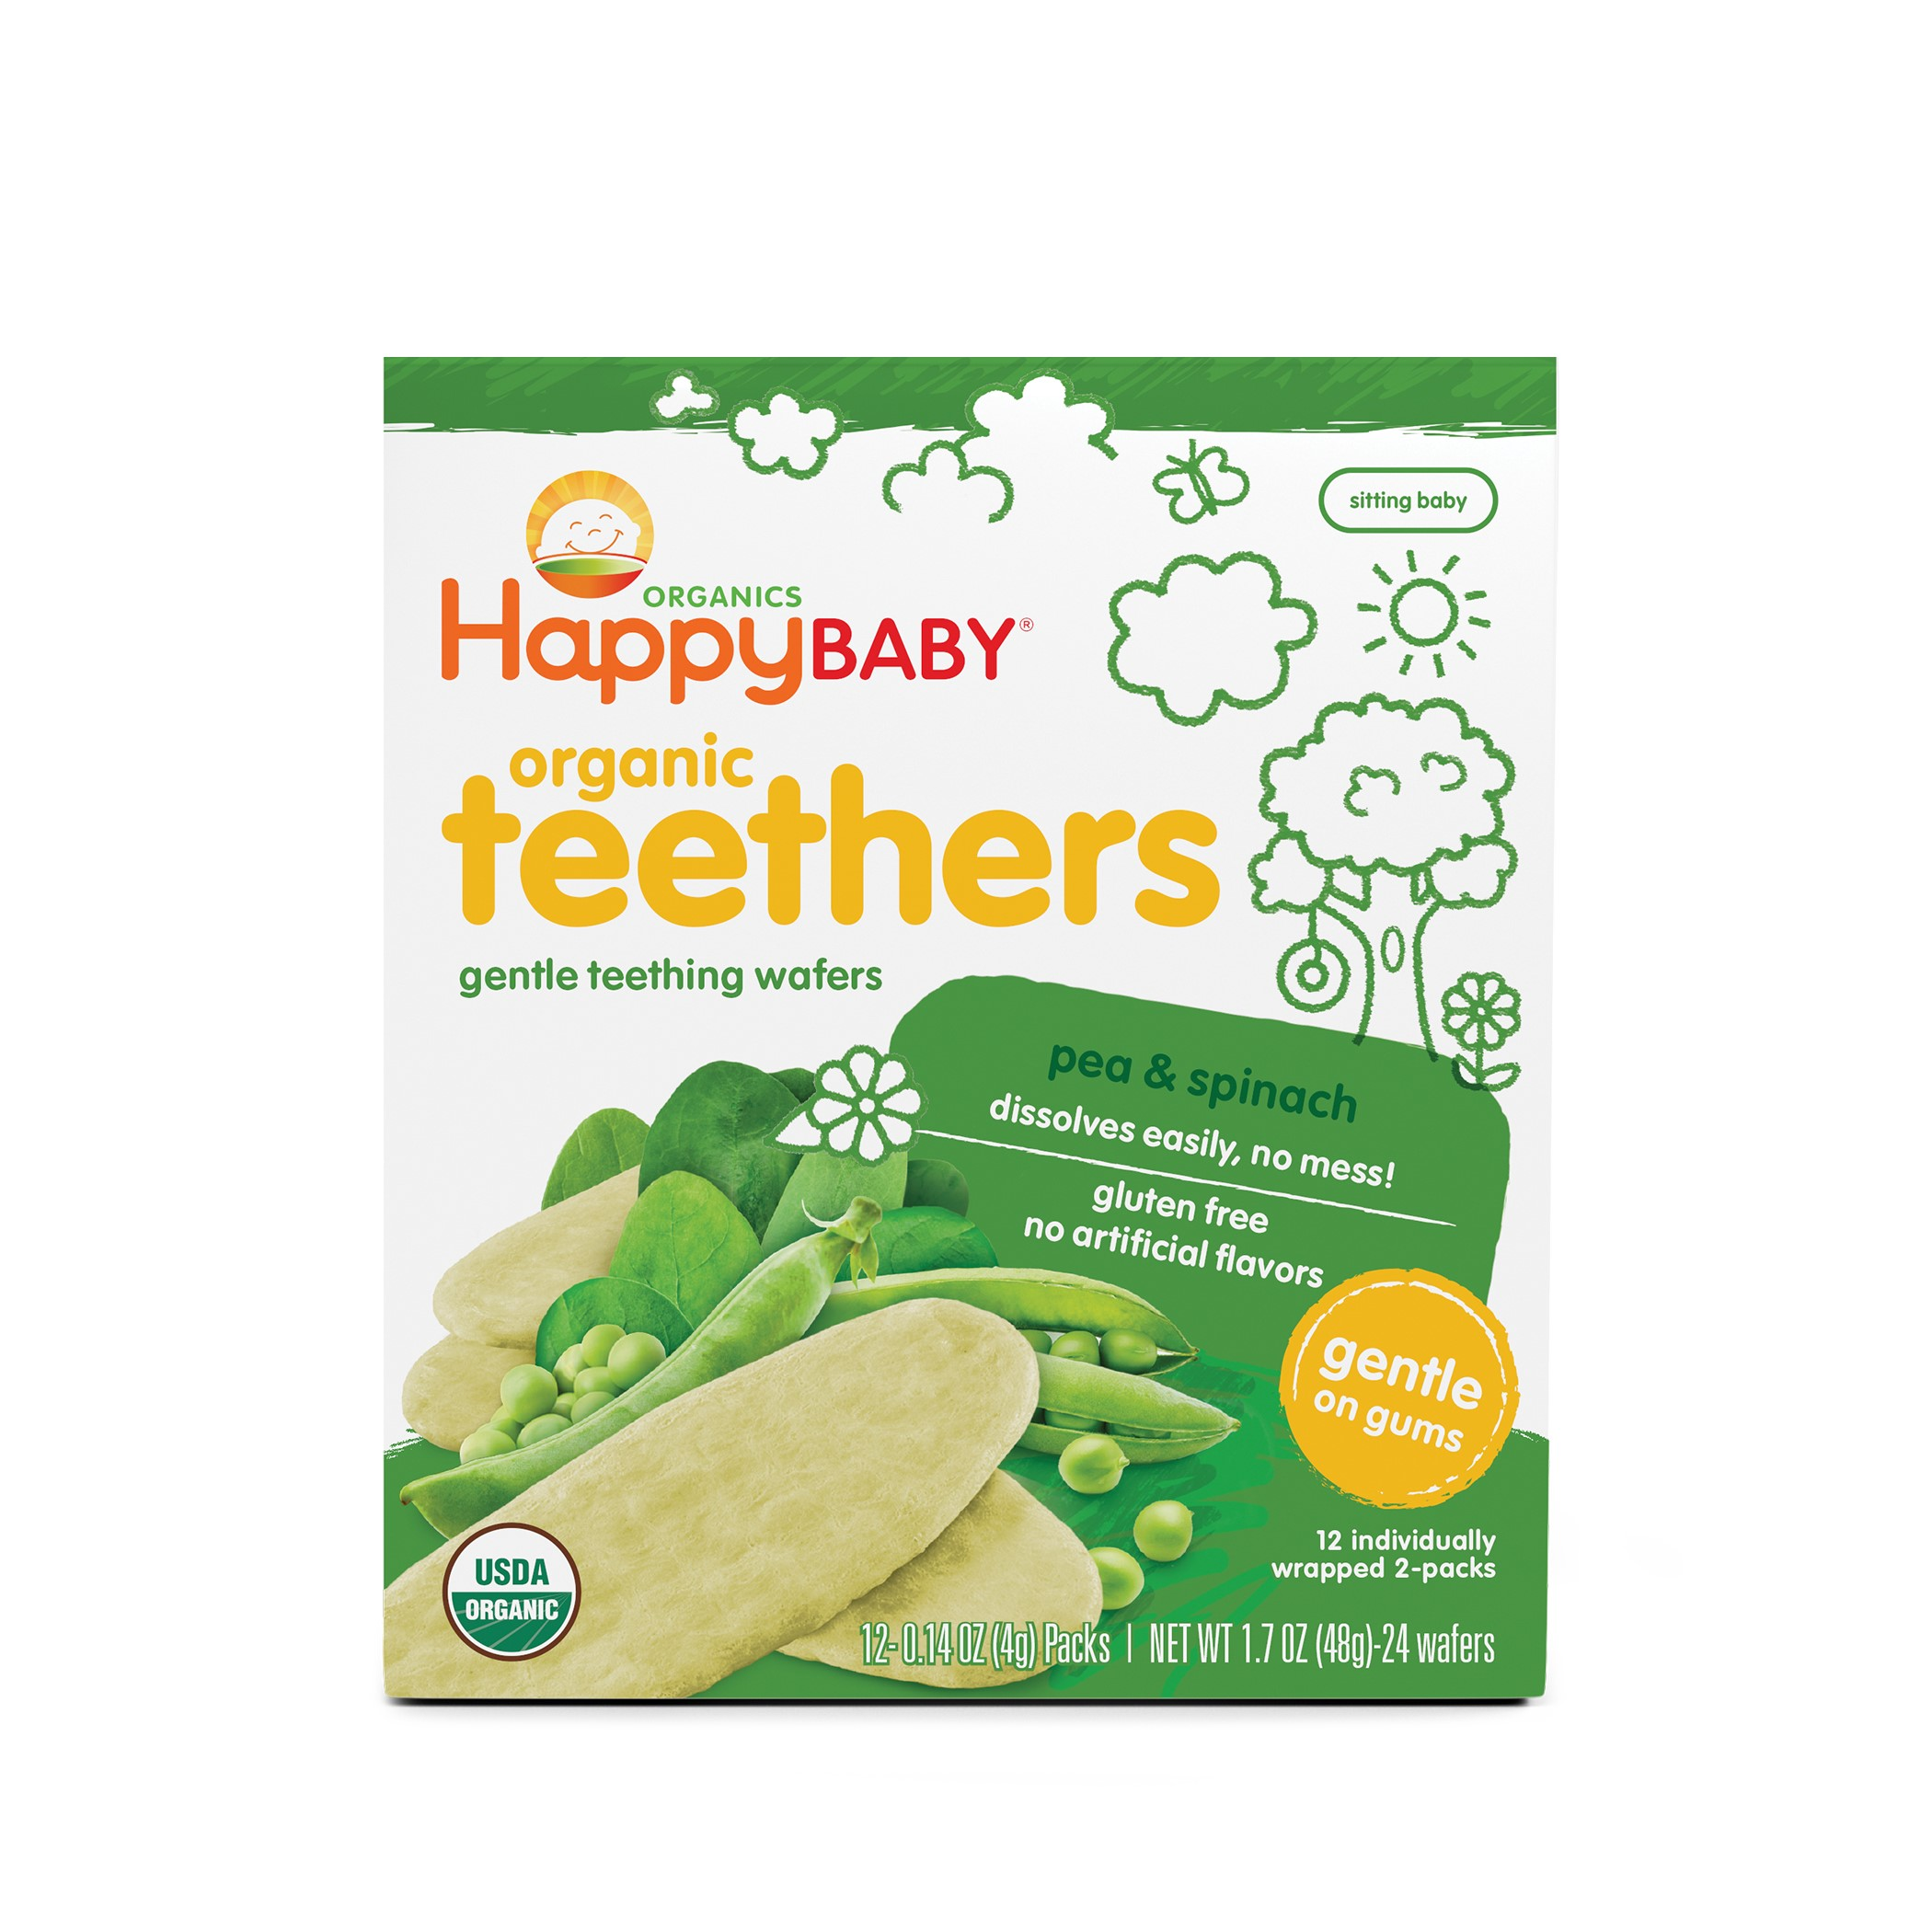 Happy Baby Gentle Teethers, Organic Baby Food, Pea & Spinach, 12 Count